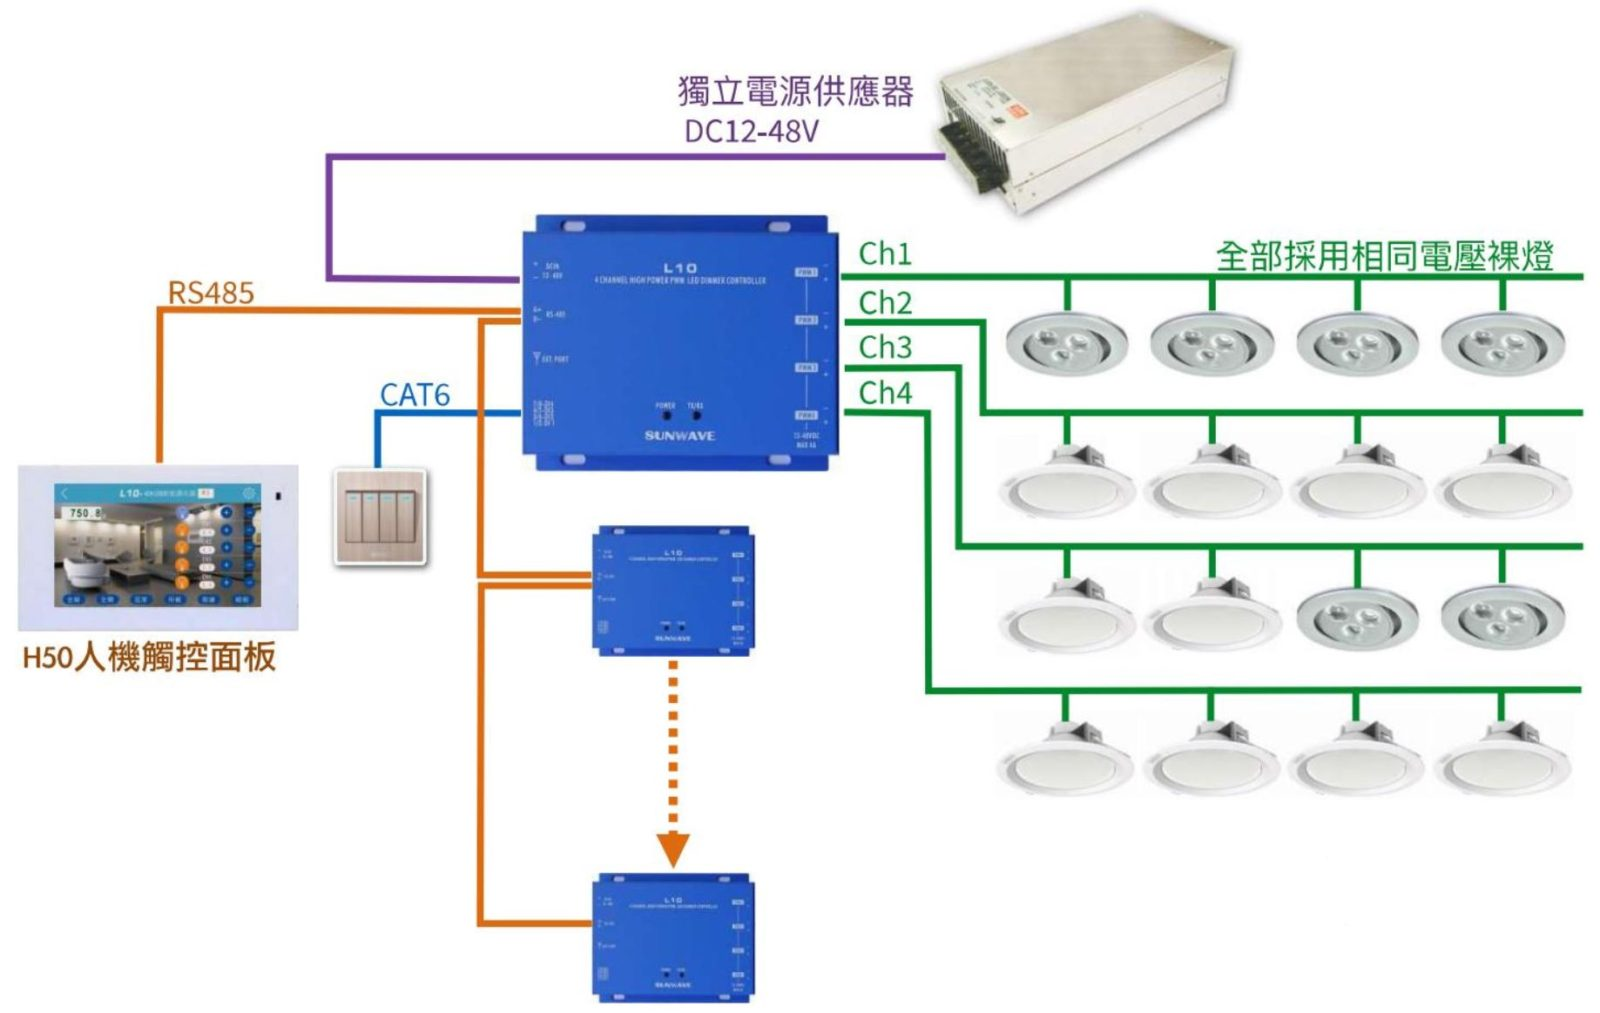 Pwm Led Dimmer 010v Connection Diagram L10 4ch Lighting Controller Sunwave Introduction Of Dimming